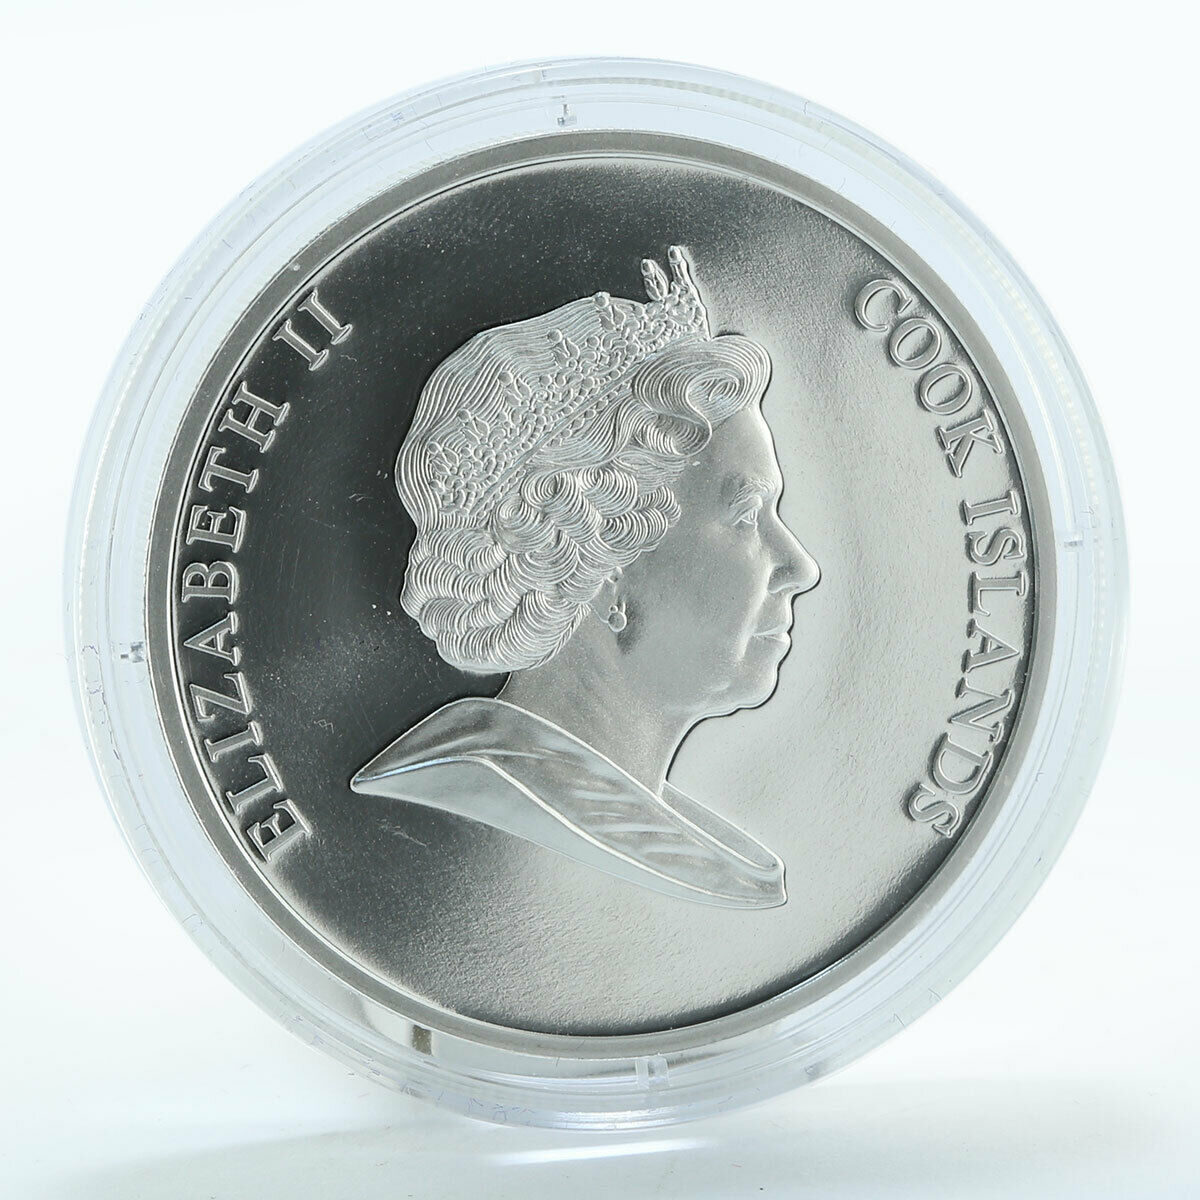 Cook Islands $10 New Year Merry Christmas Silver Coloured Аnimation Coin 2008